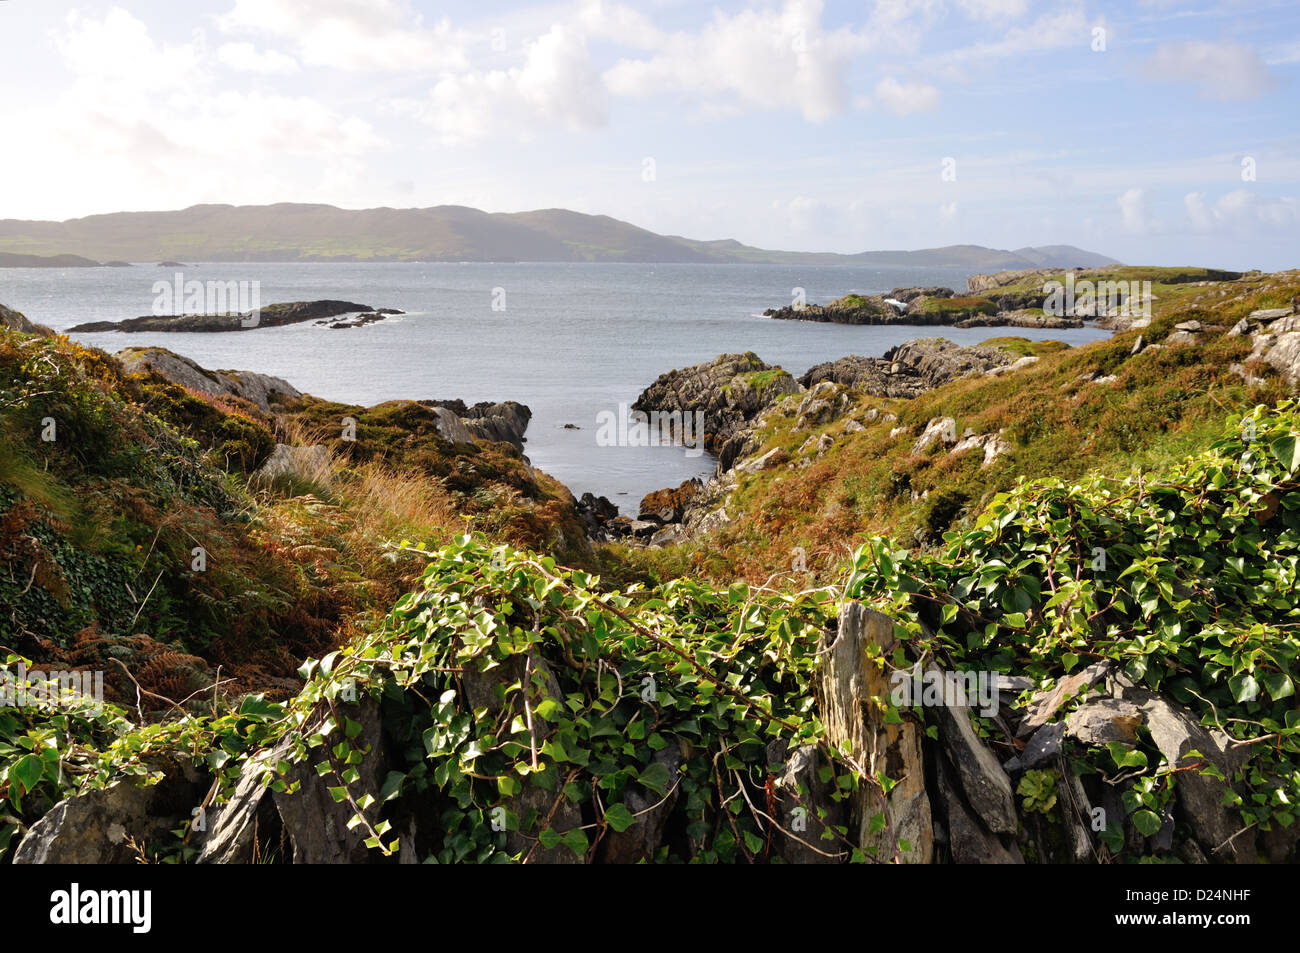 View of Coulagh Bay looking towards County Kerry from West Cork,Ireland - Stock Image